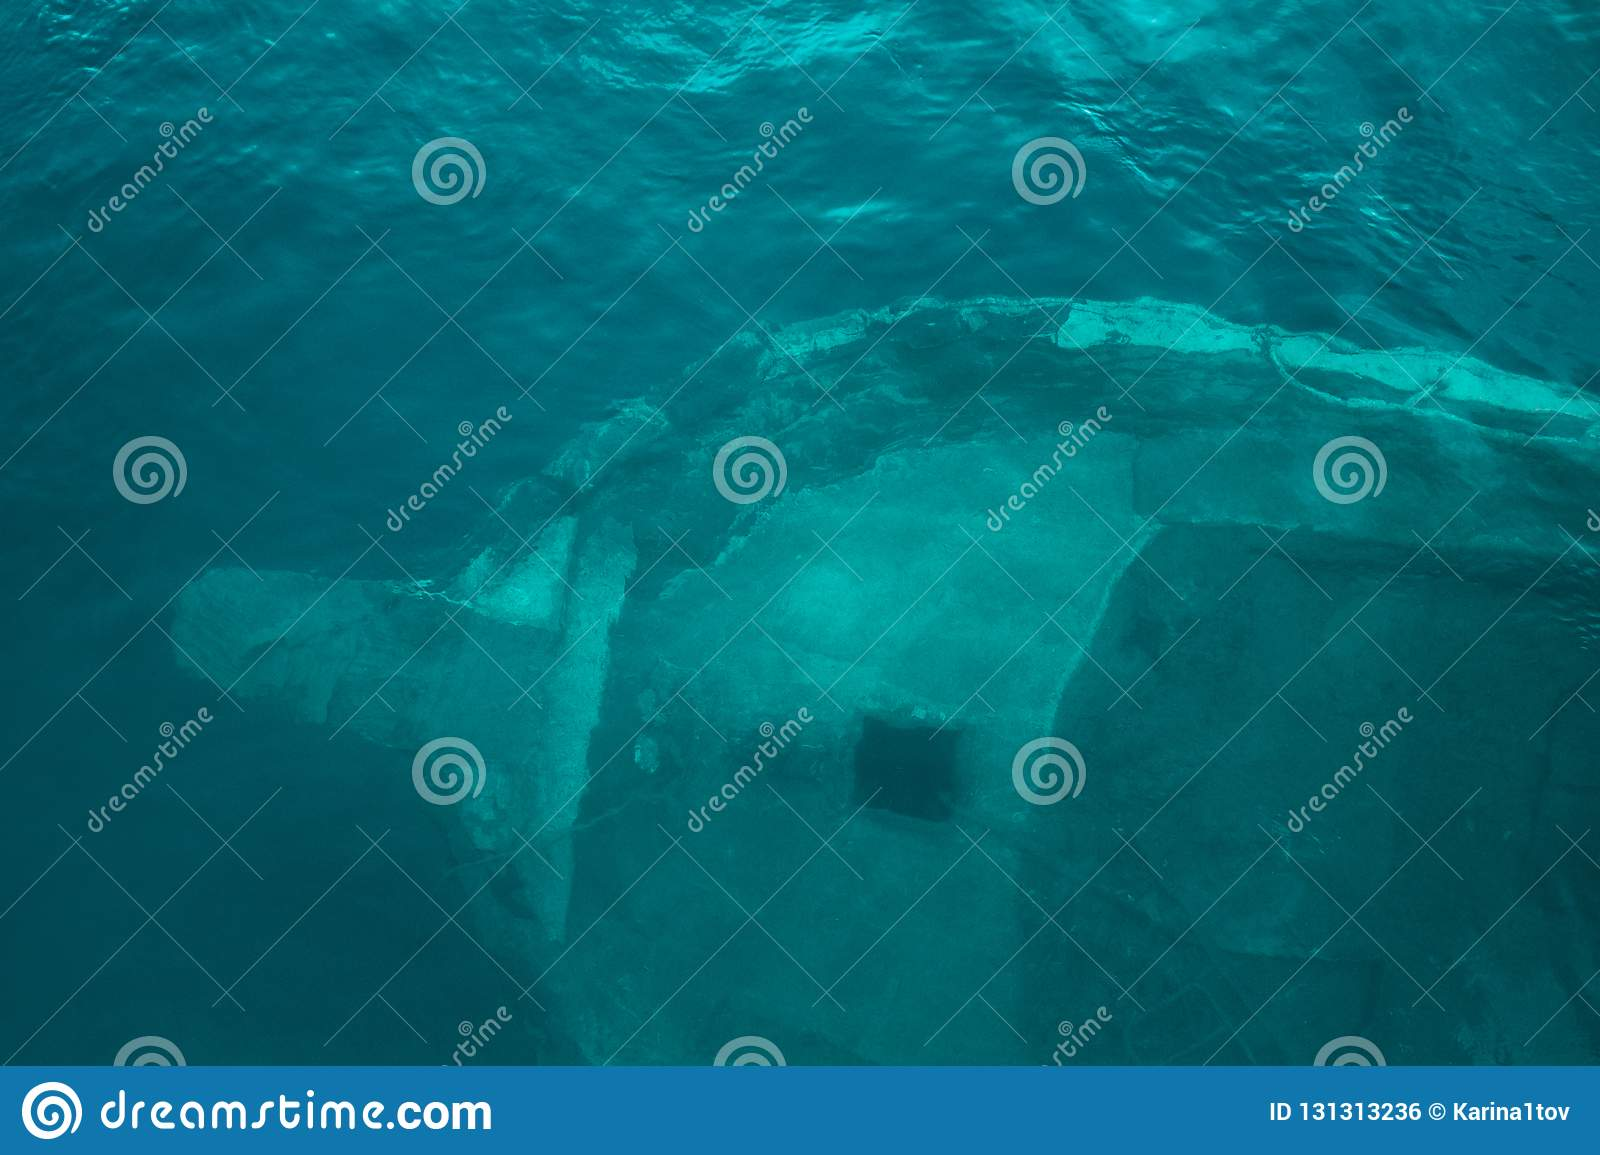 Large sunken ship, which is visible through the clear, blue water, view from the top.